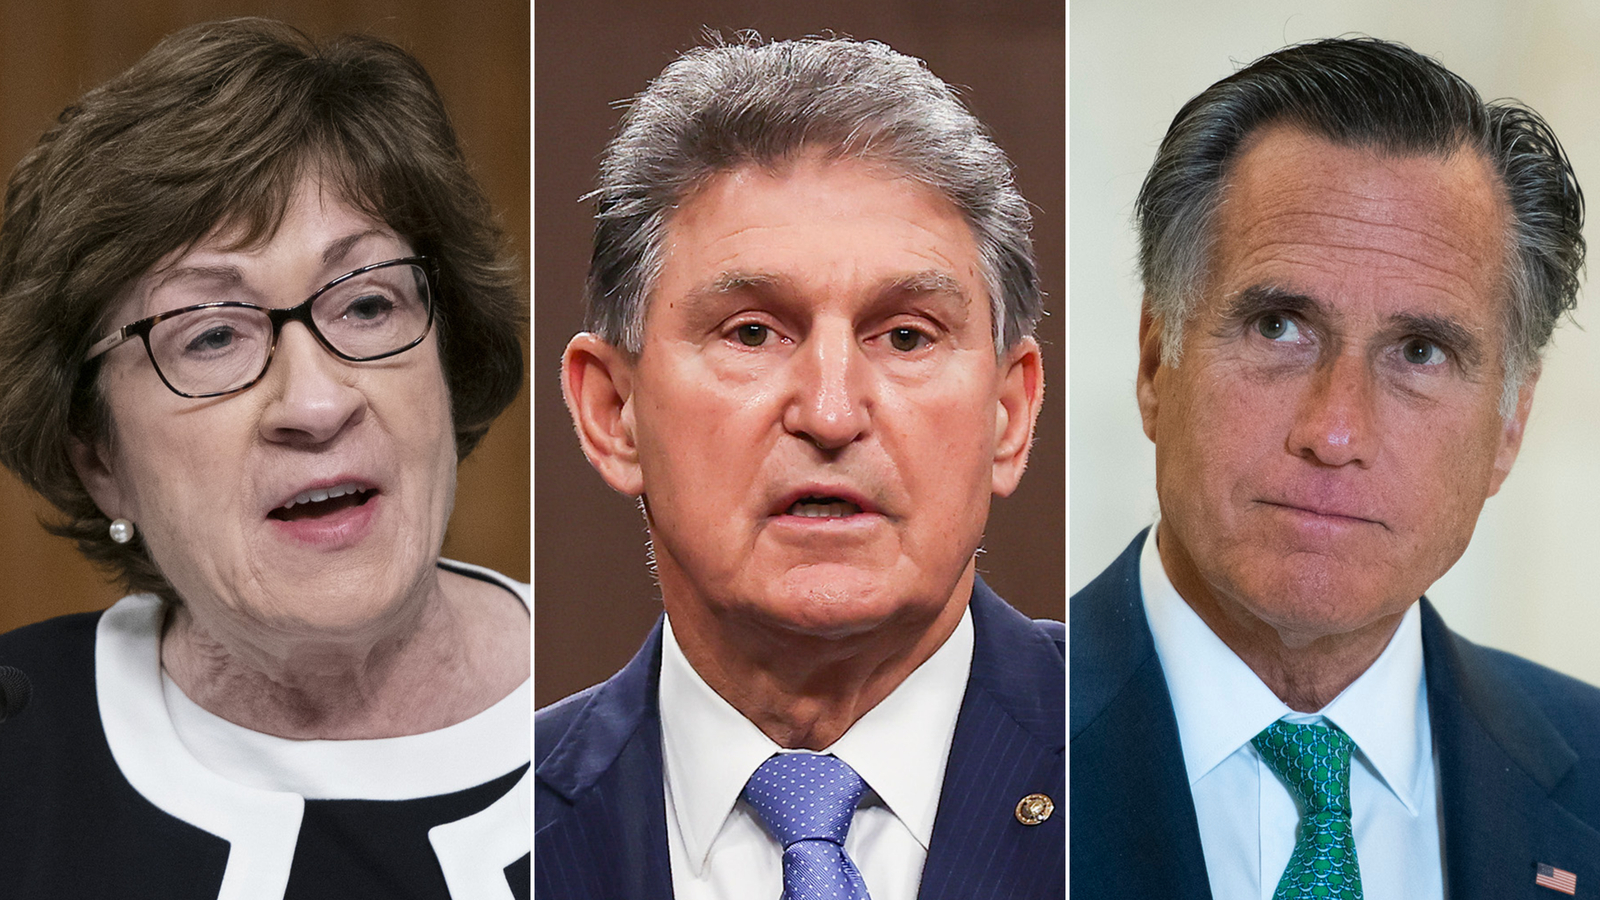 Bipartisan group has miles to go on infrastructure talks